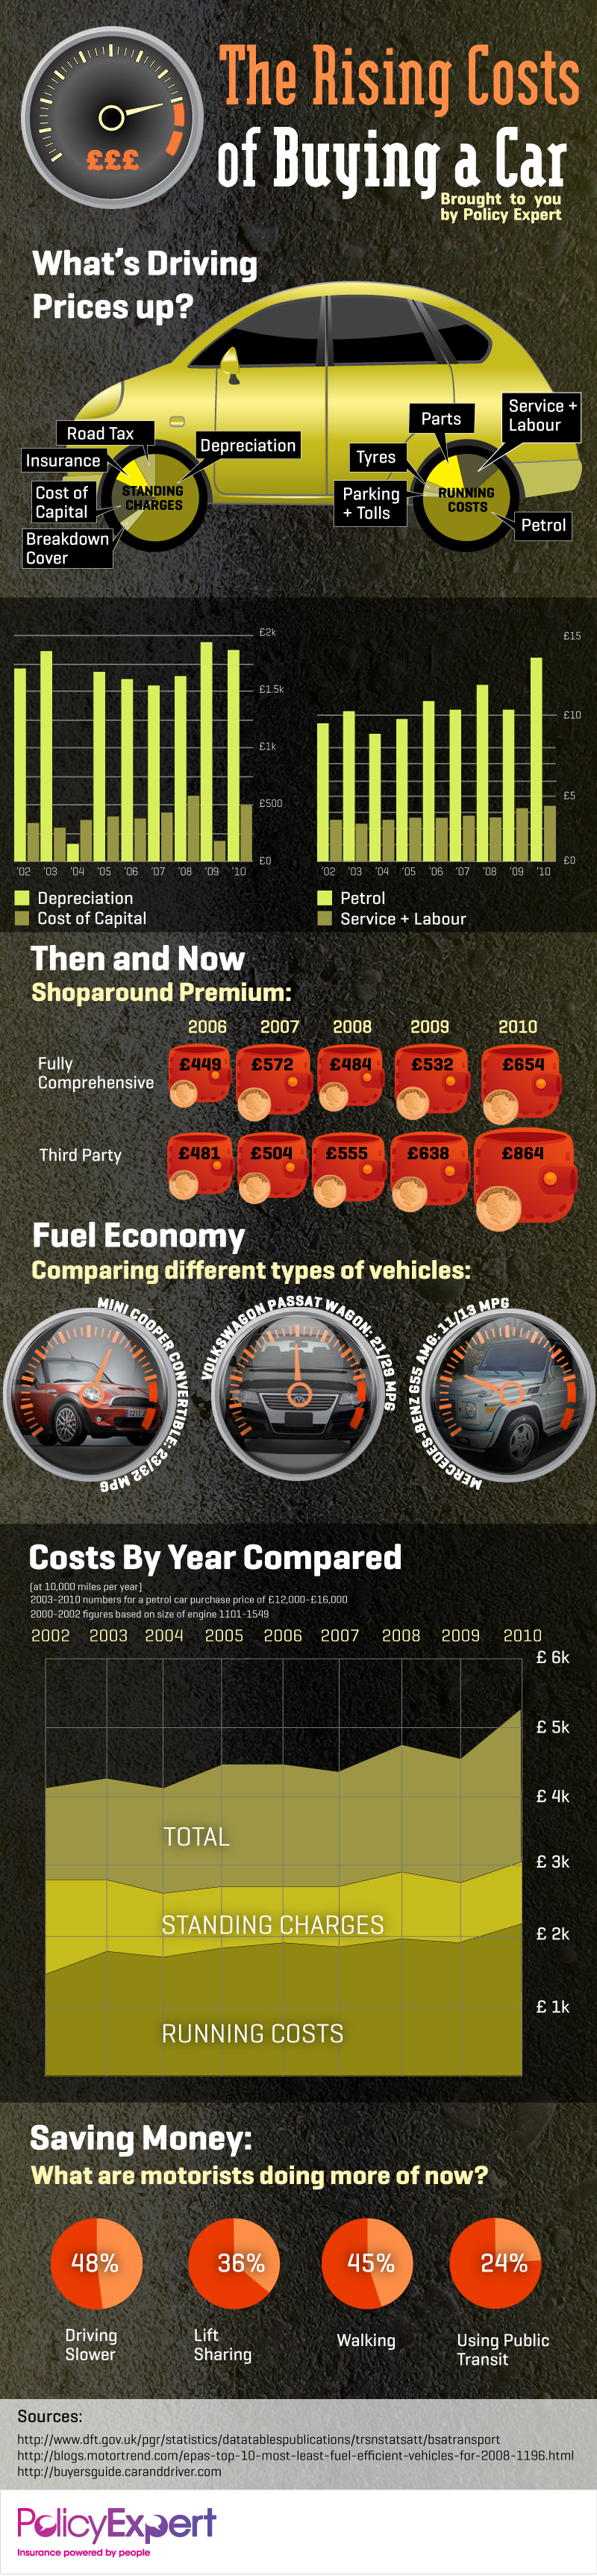 Rising Costs of Buying a Car Infographic